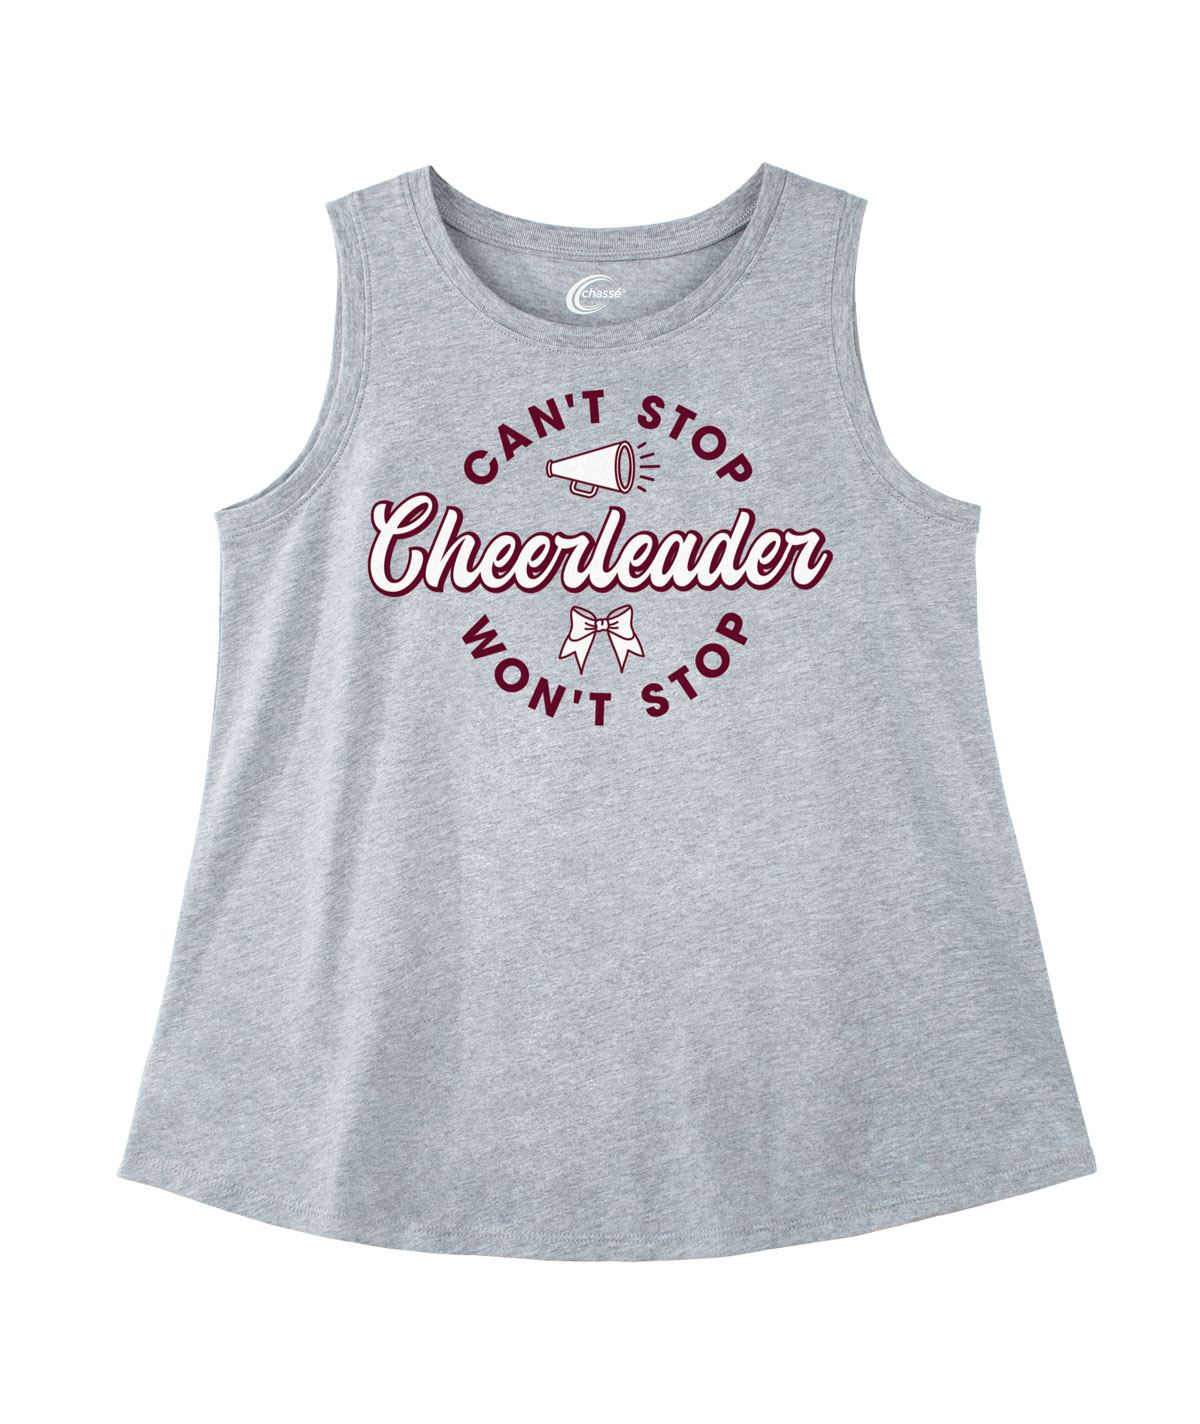 Chasse Can't Stop Won't Stop Cheerleader Tank